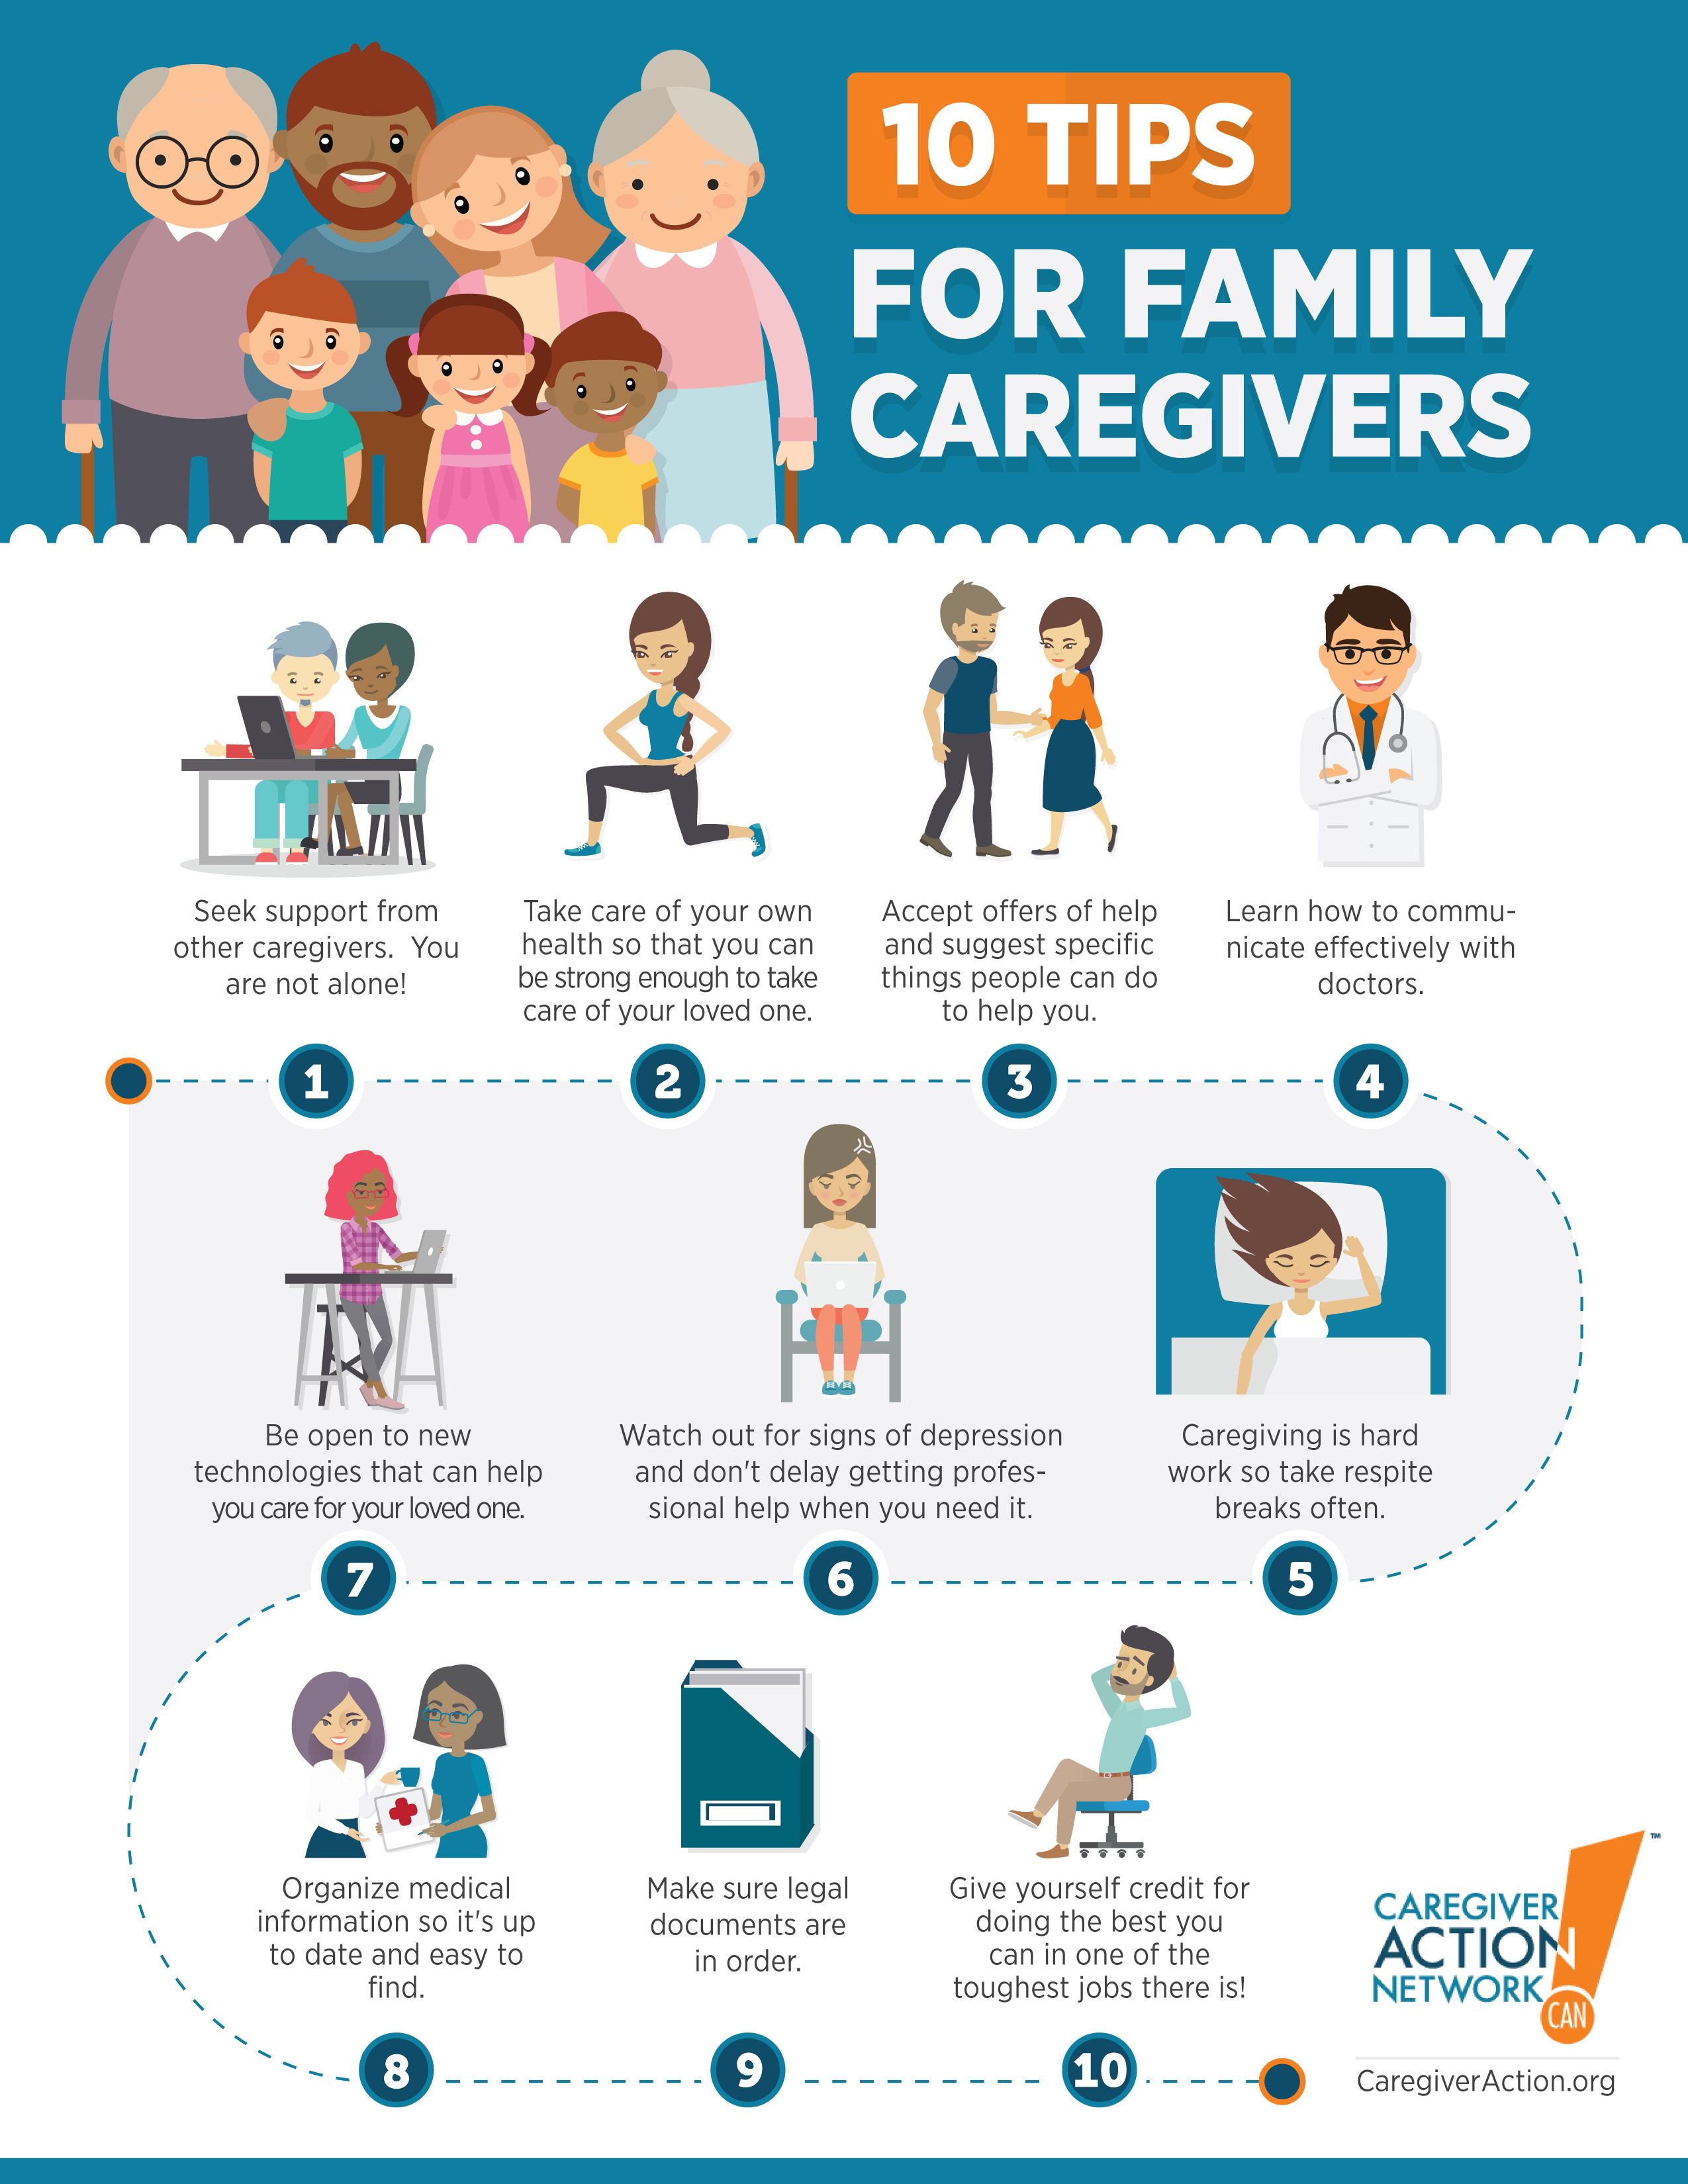 National Family Caregivers Month Celebrated Each November Is A Time To Recognize And Honor Family Caregivers Acros Family Caregiver Elderly Care Caregiver